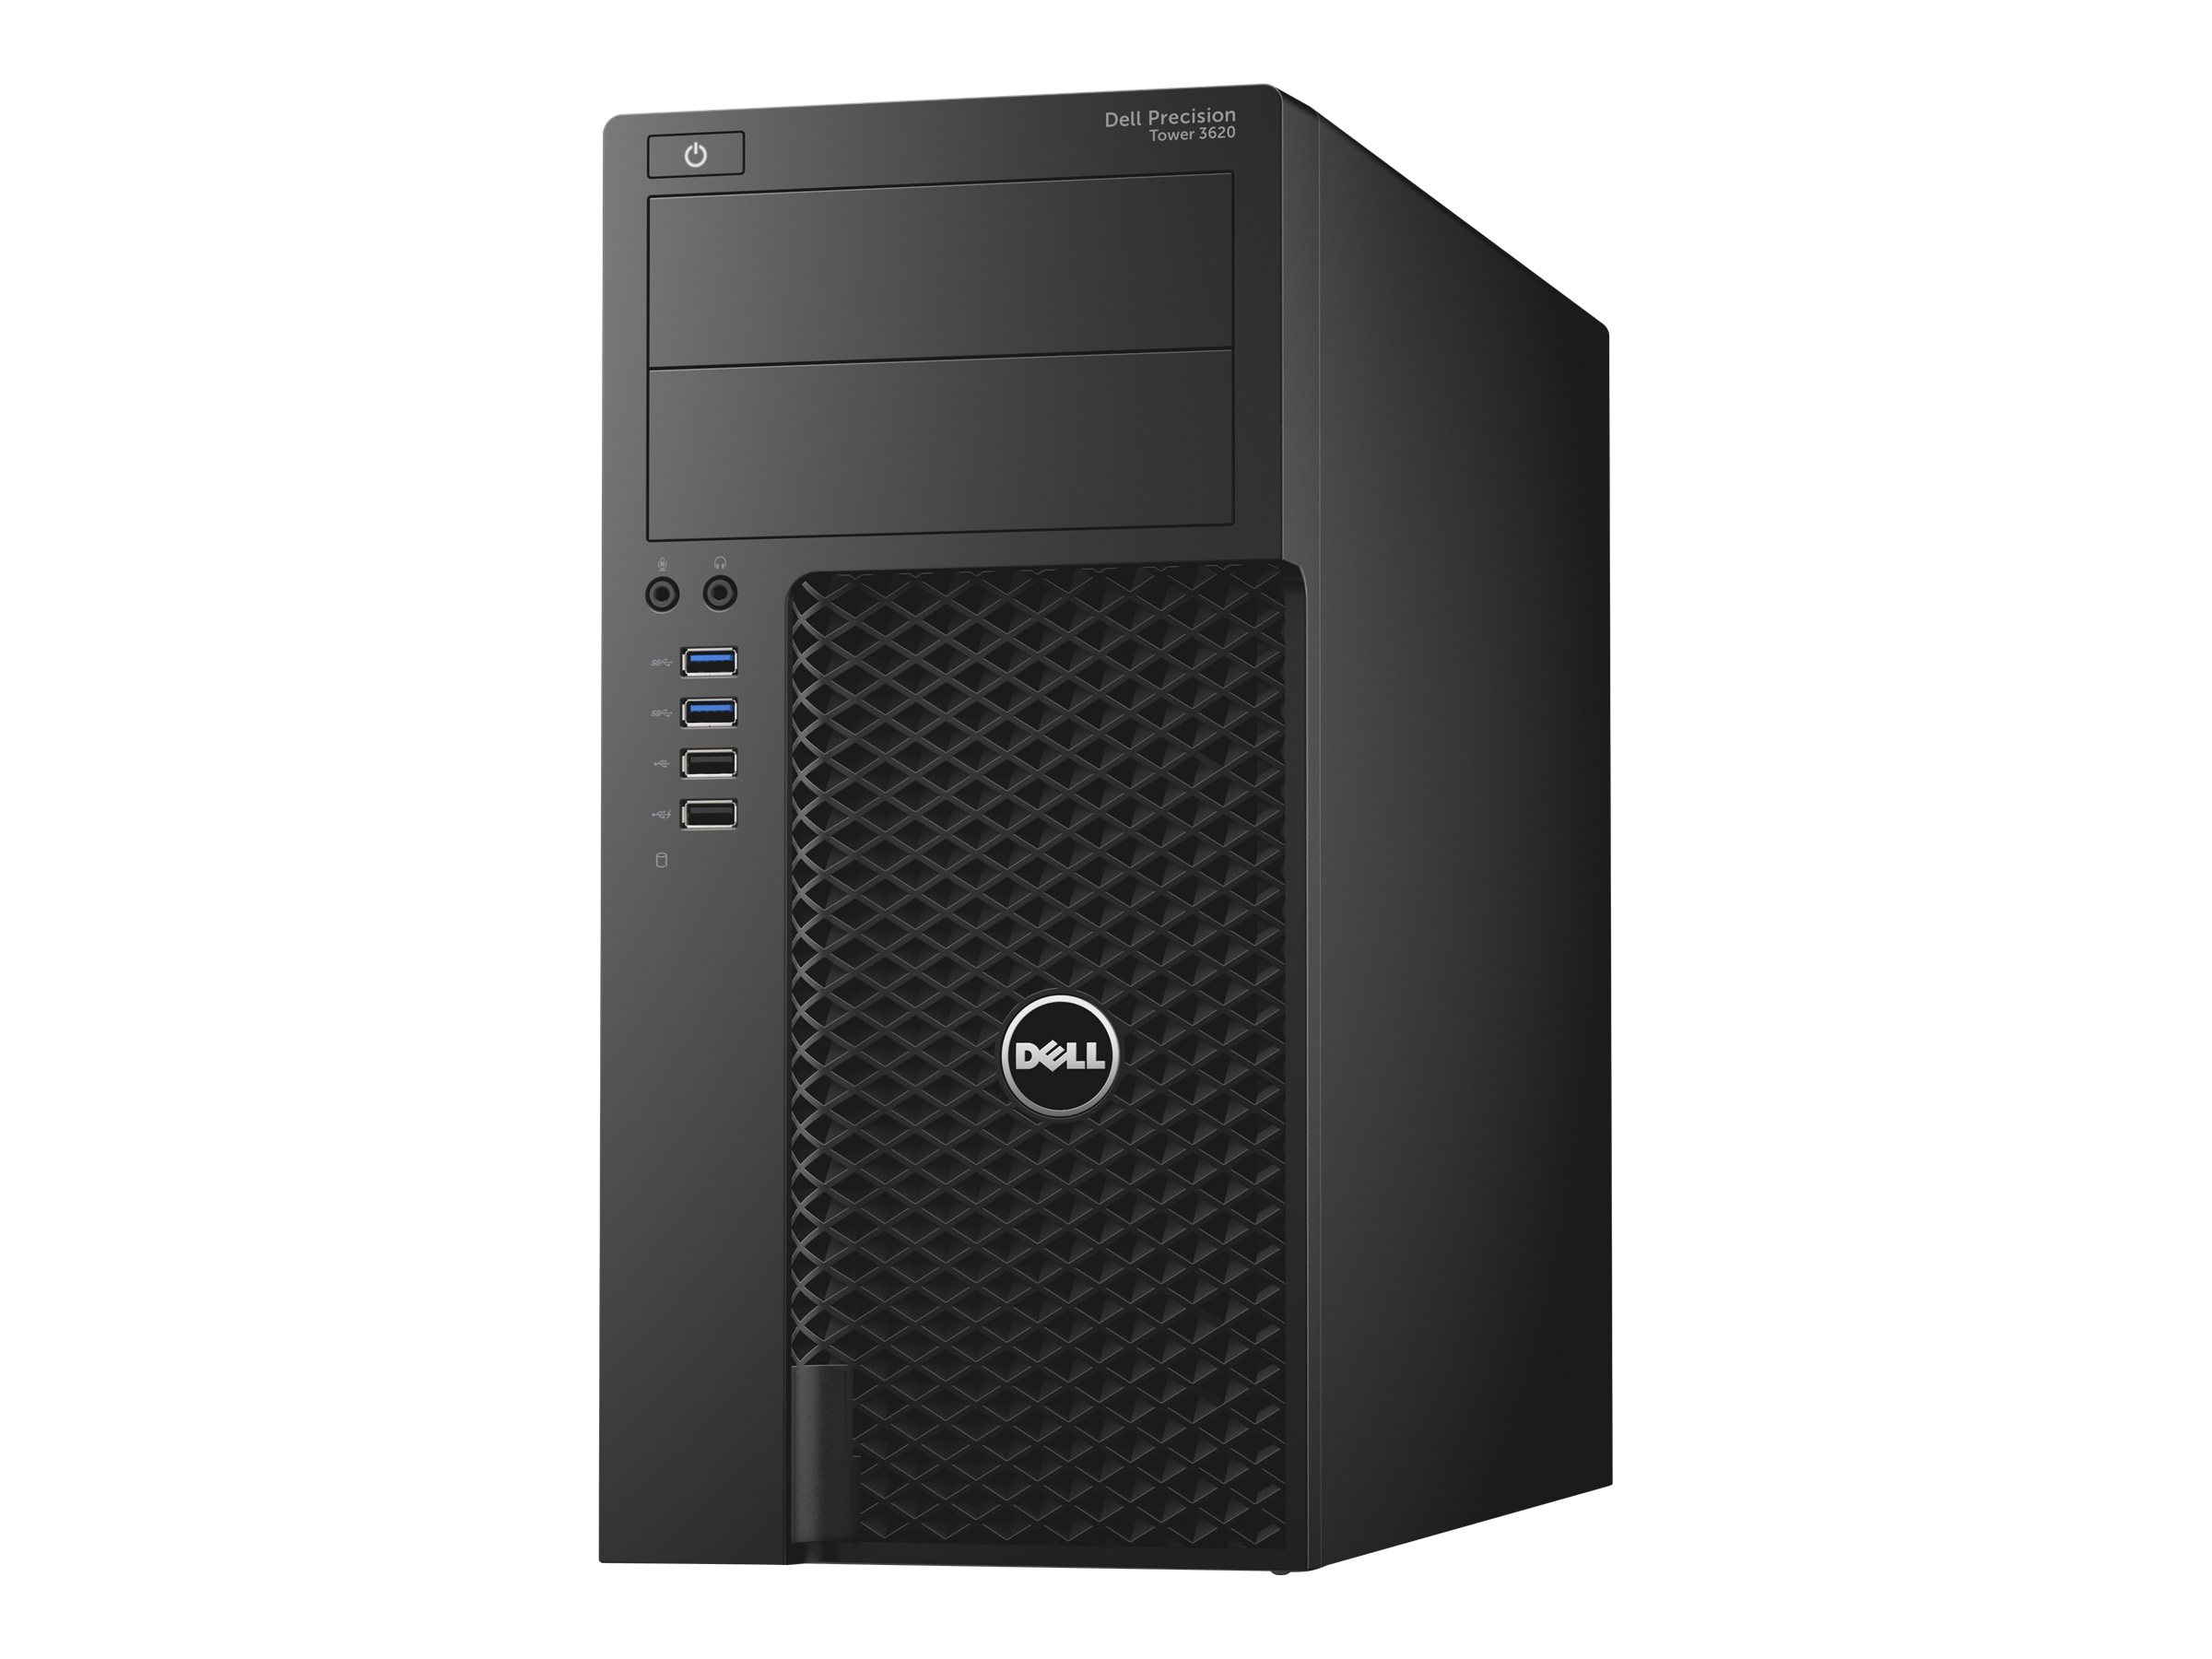 Dell Precision Tower 3620 - MDT - 1 x Core i5 6500 / 3.2 GHz - RAM 8 GB - HDD 1 TB - DVD-Writer